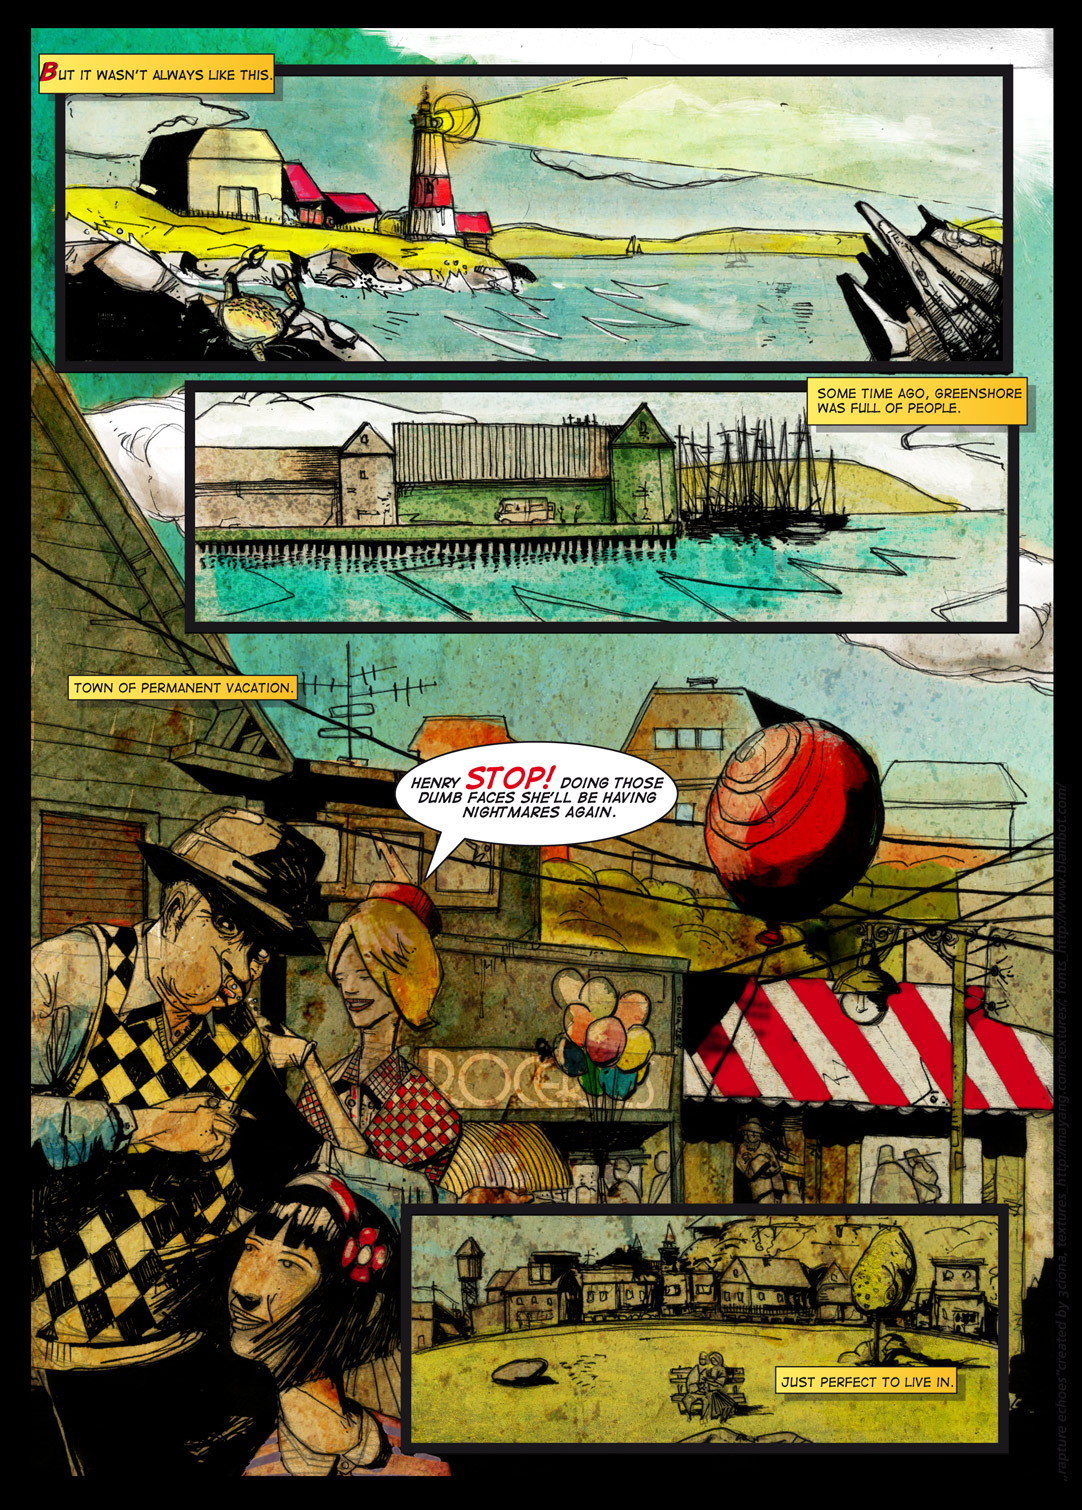 bioshock fan comic book pg2